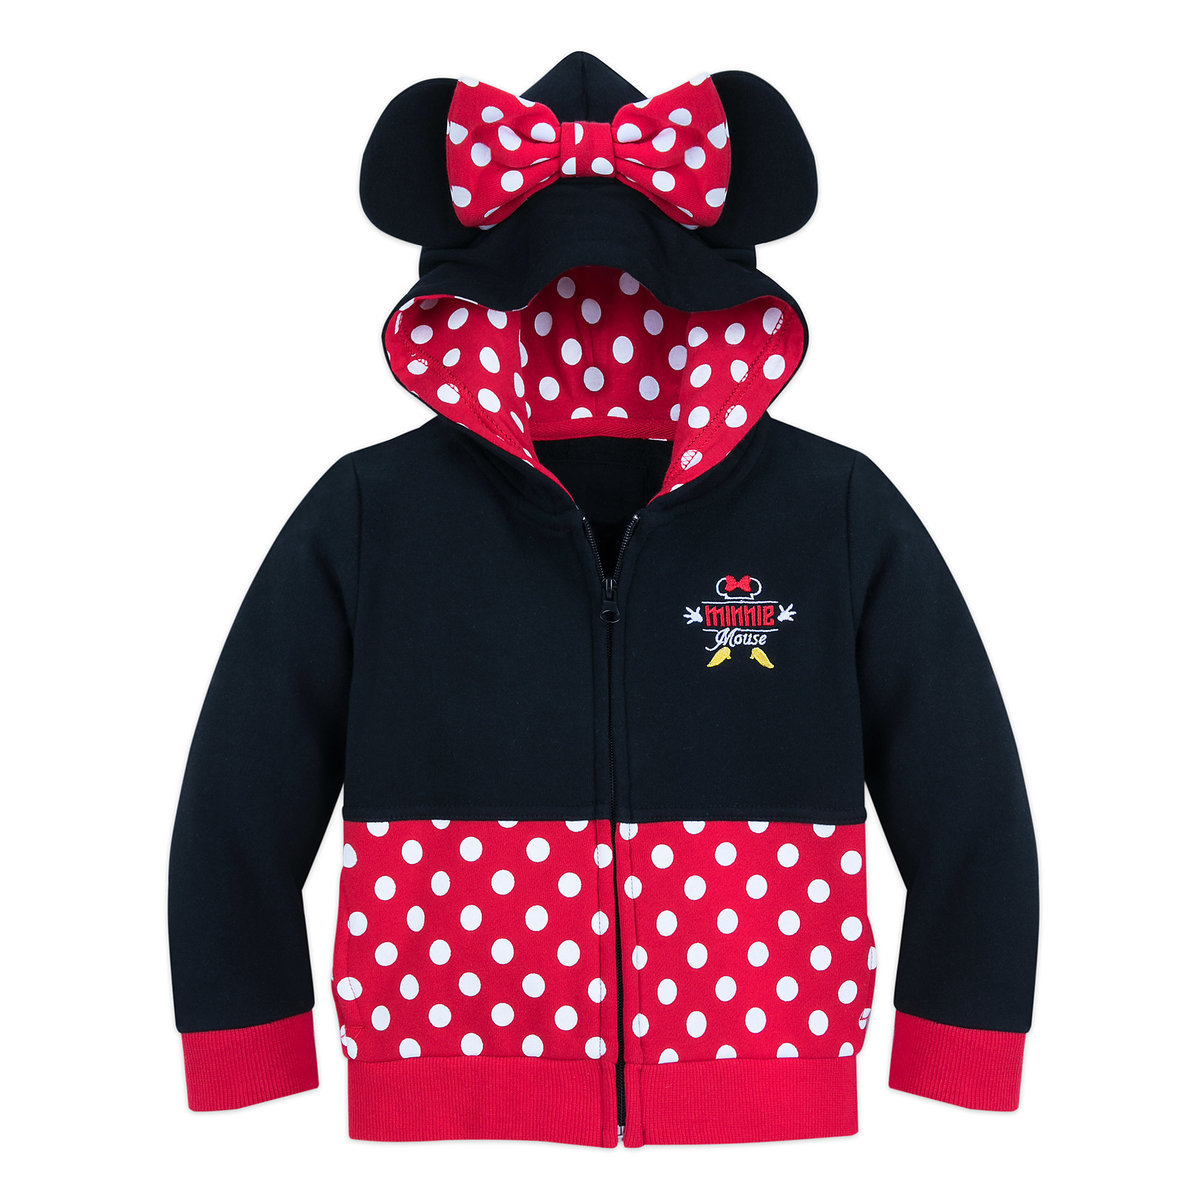 9c18e58d7d I Am Minnie Mouse Zip-Up Hoodie for Toddlers